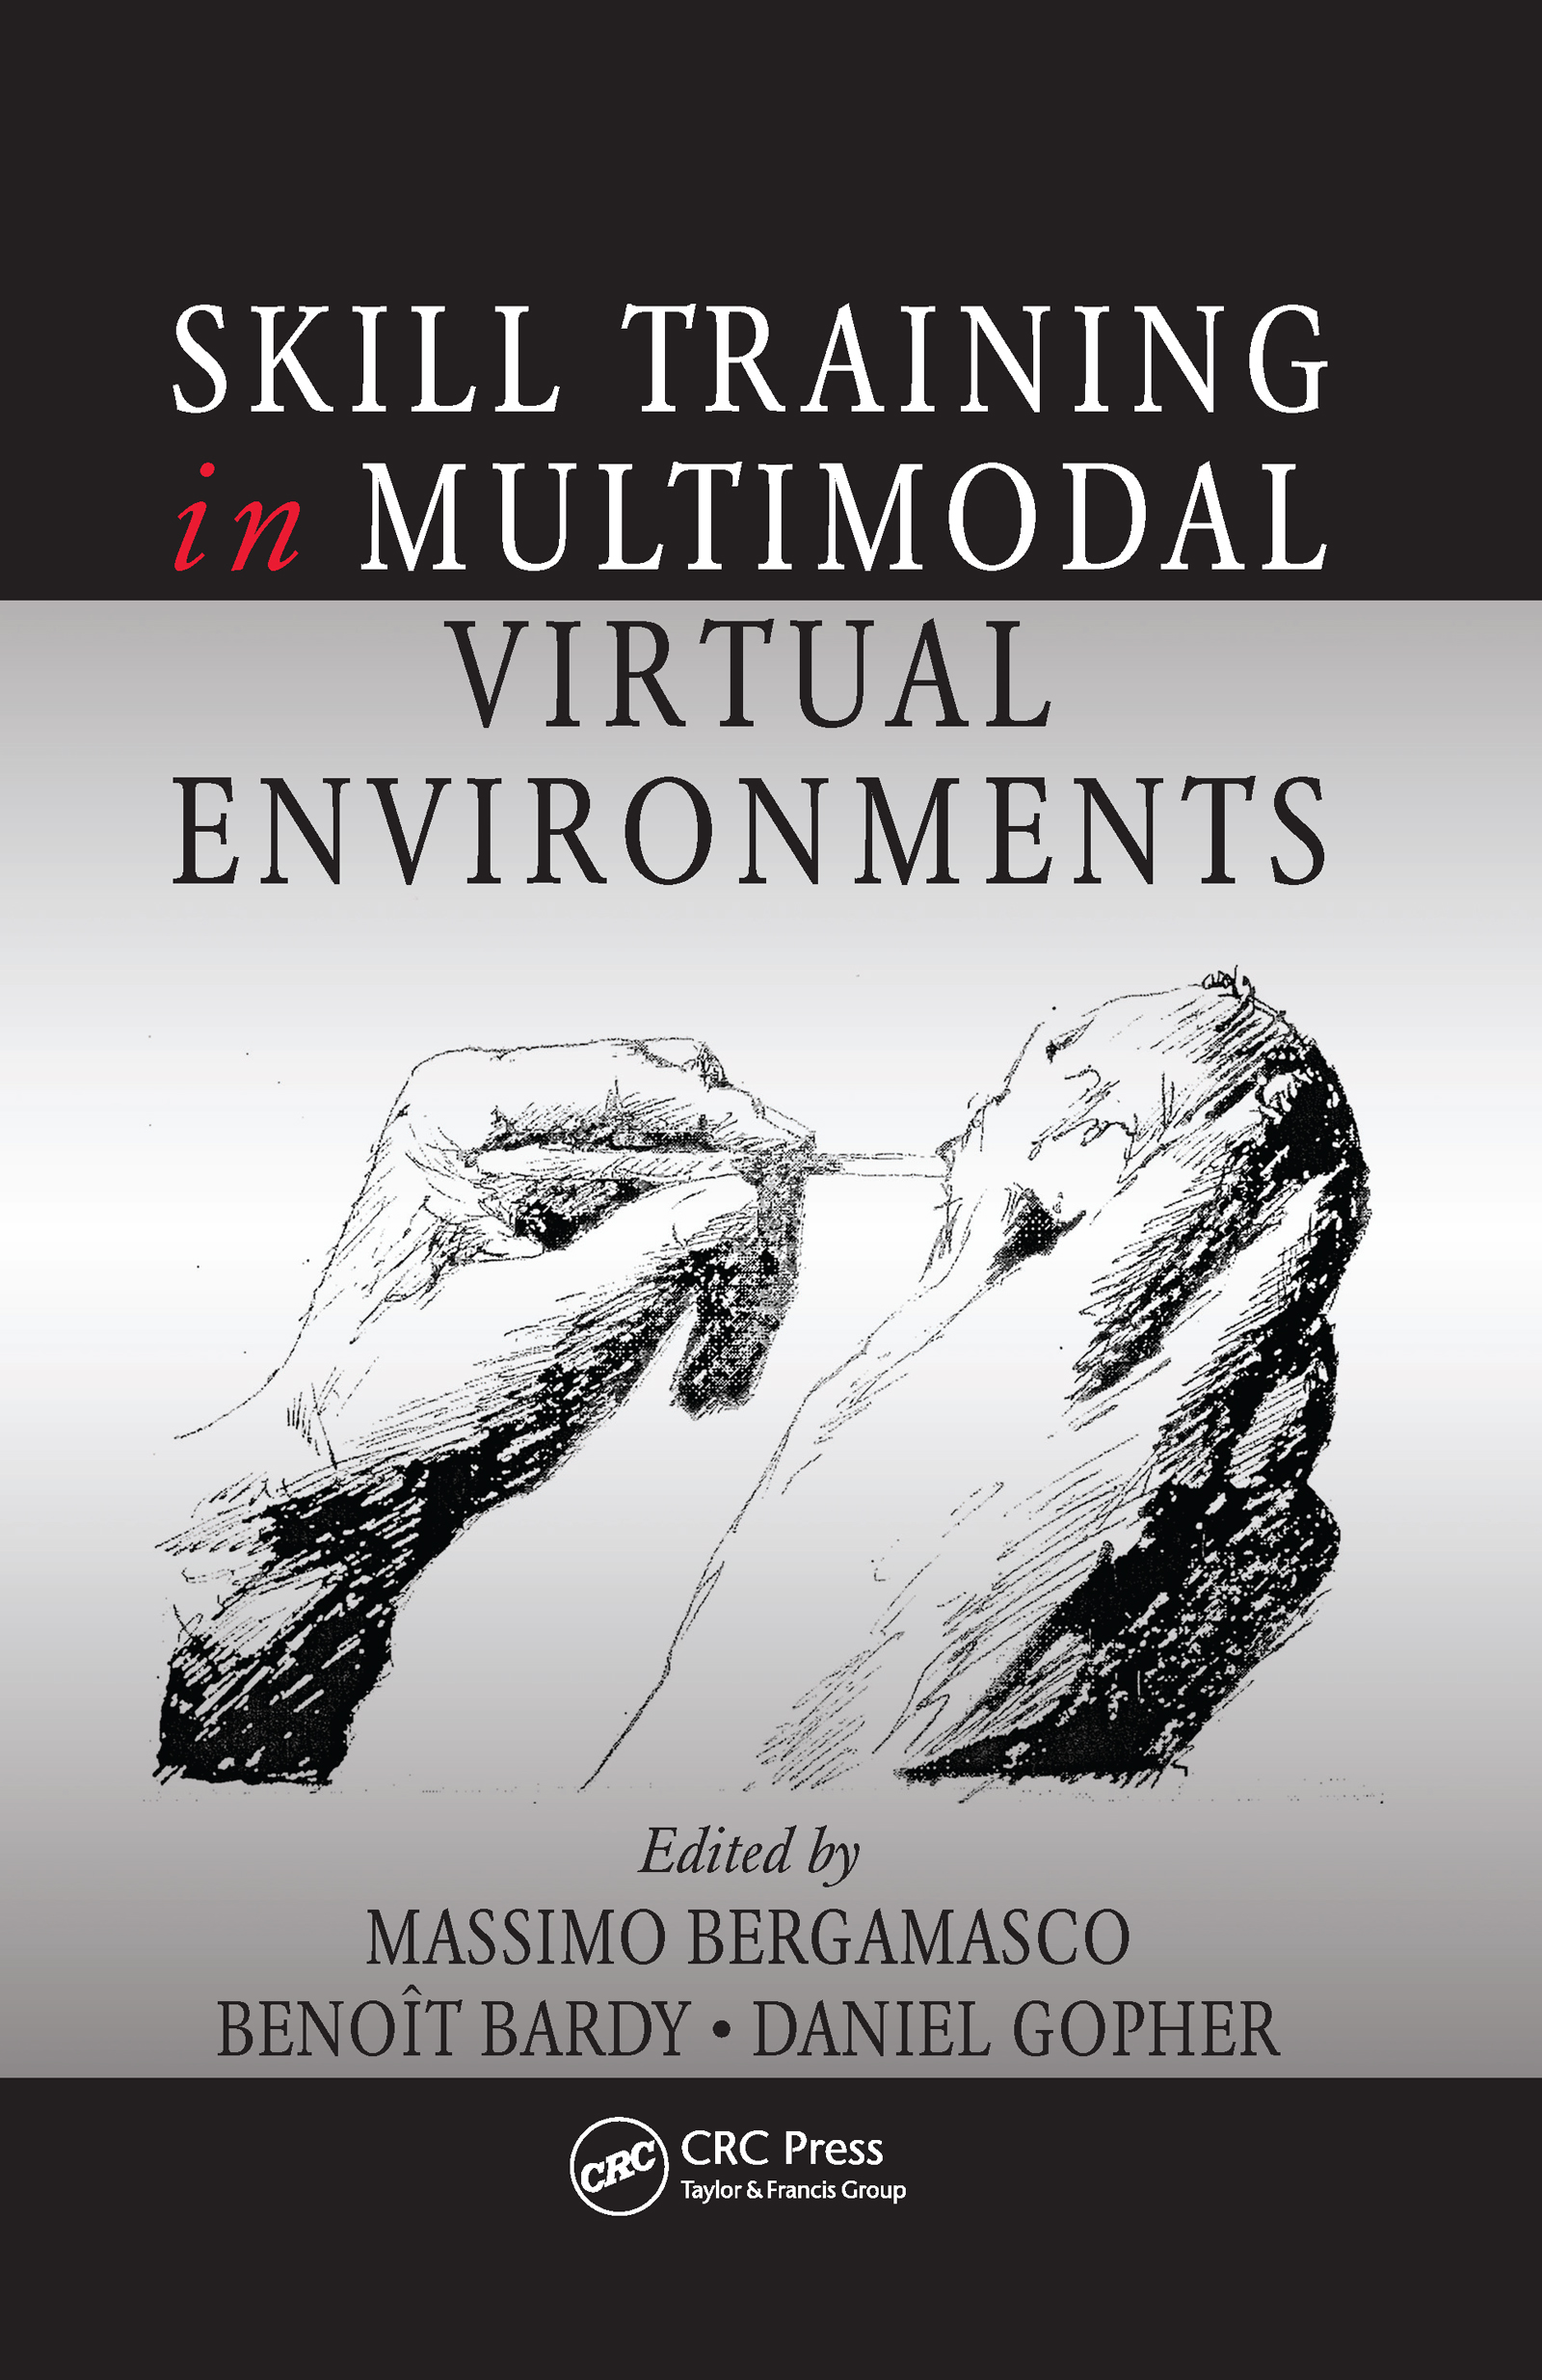 Skill Training in Multimodal Virtual Environments book cover